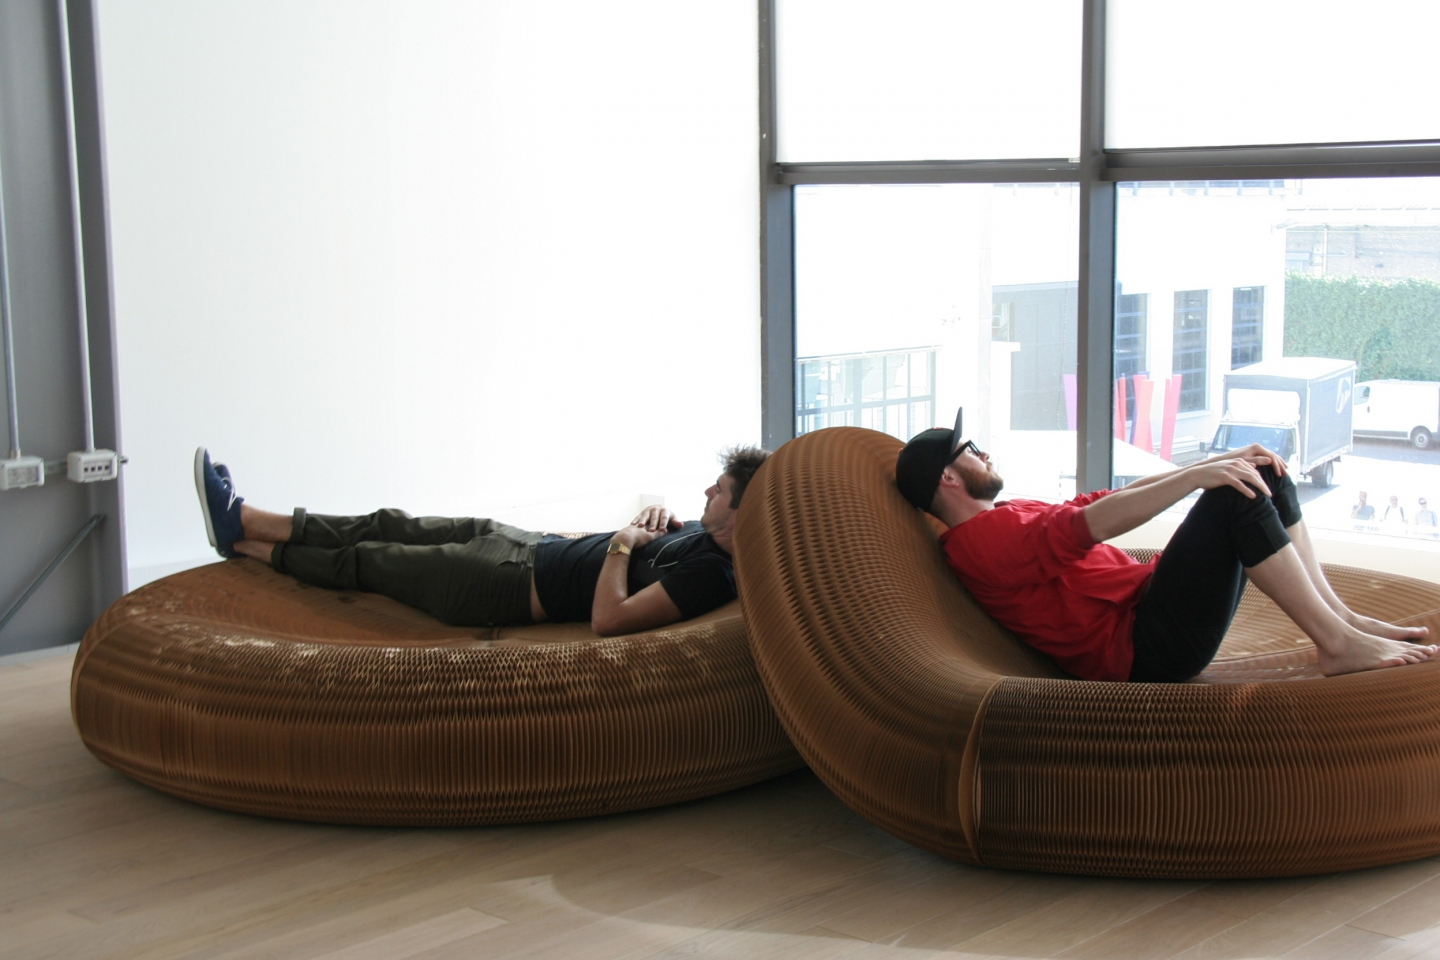 Two men take a rest on softseating lounger.